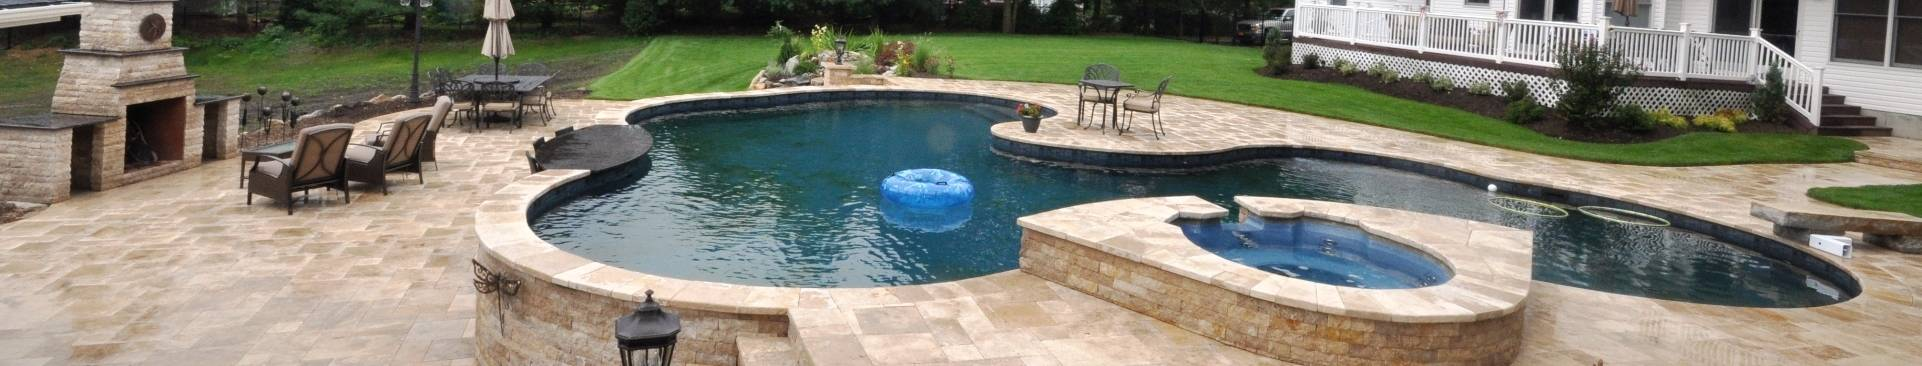 travertine-for-pool-patio-on-long-island-ny